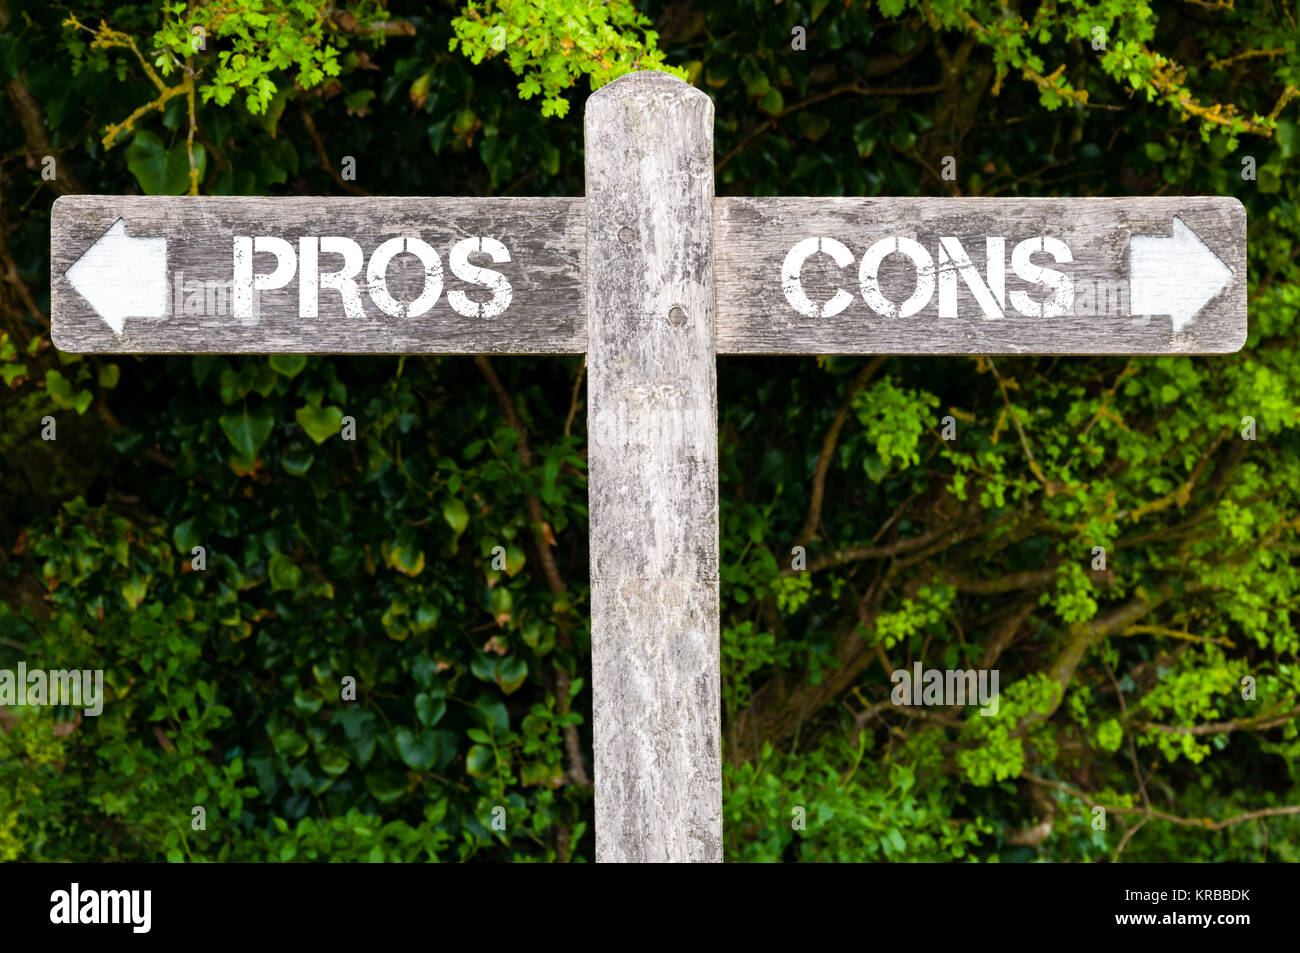 PROS versus CONS directional signs - Stock Image